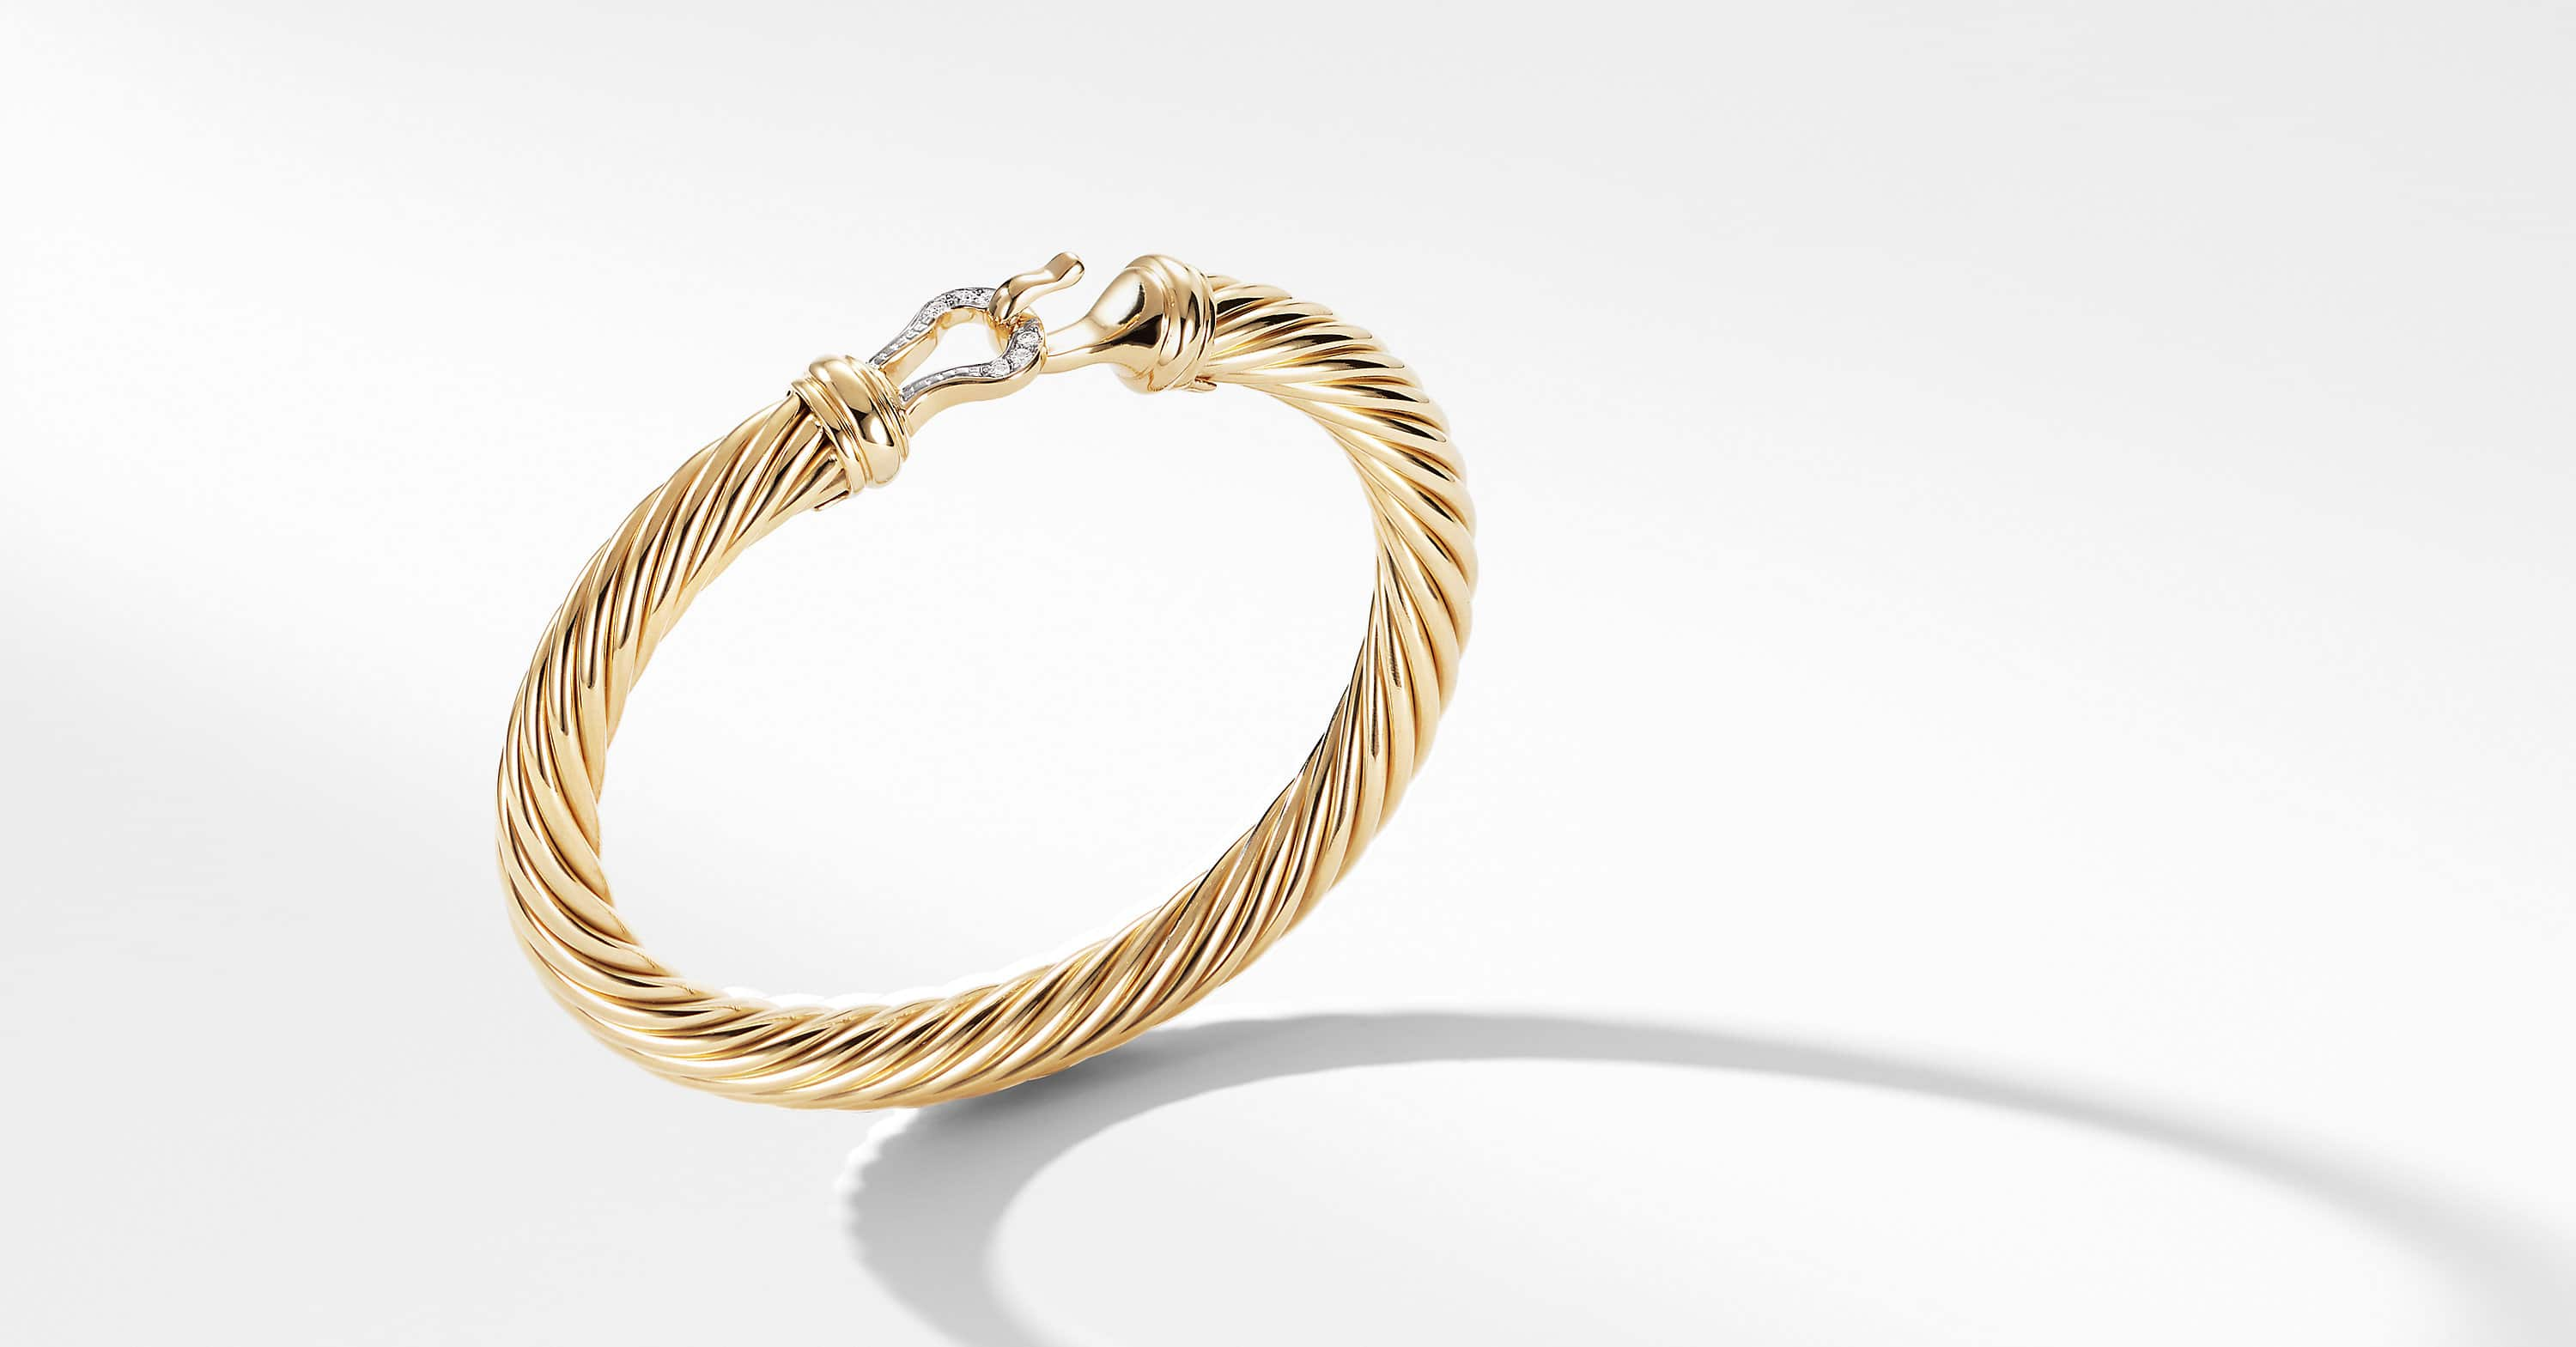 Cable Buckle Bracelet with Diamonds and 18K Gold, 7mm